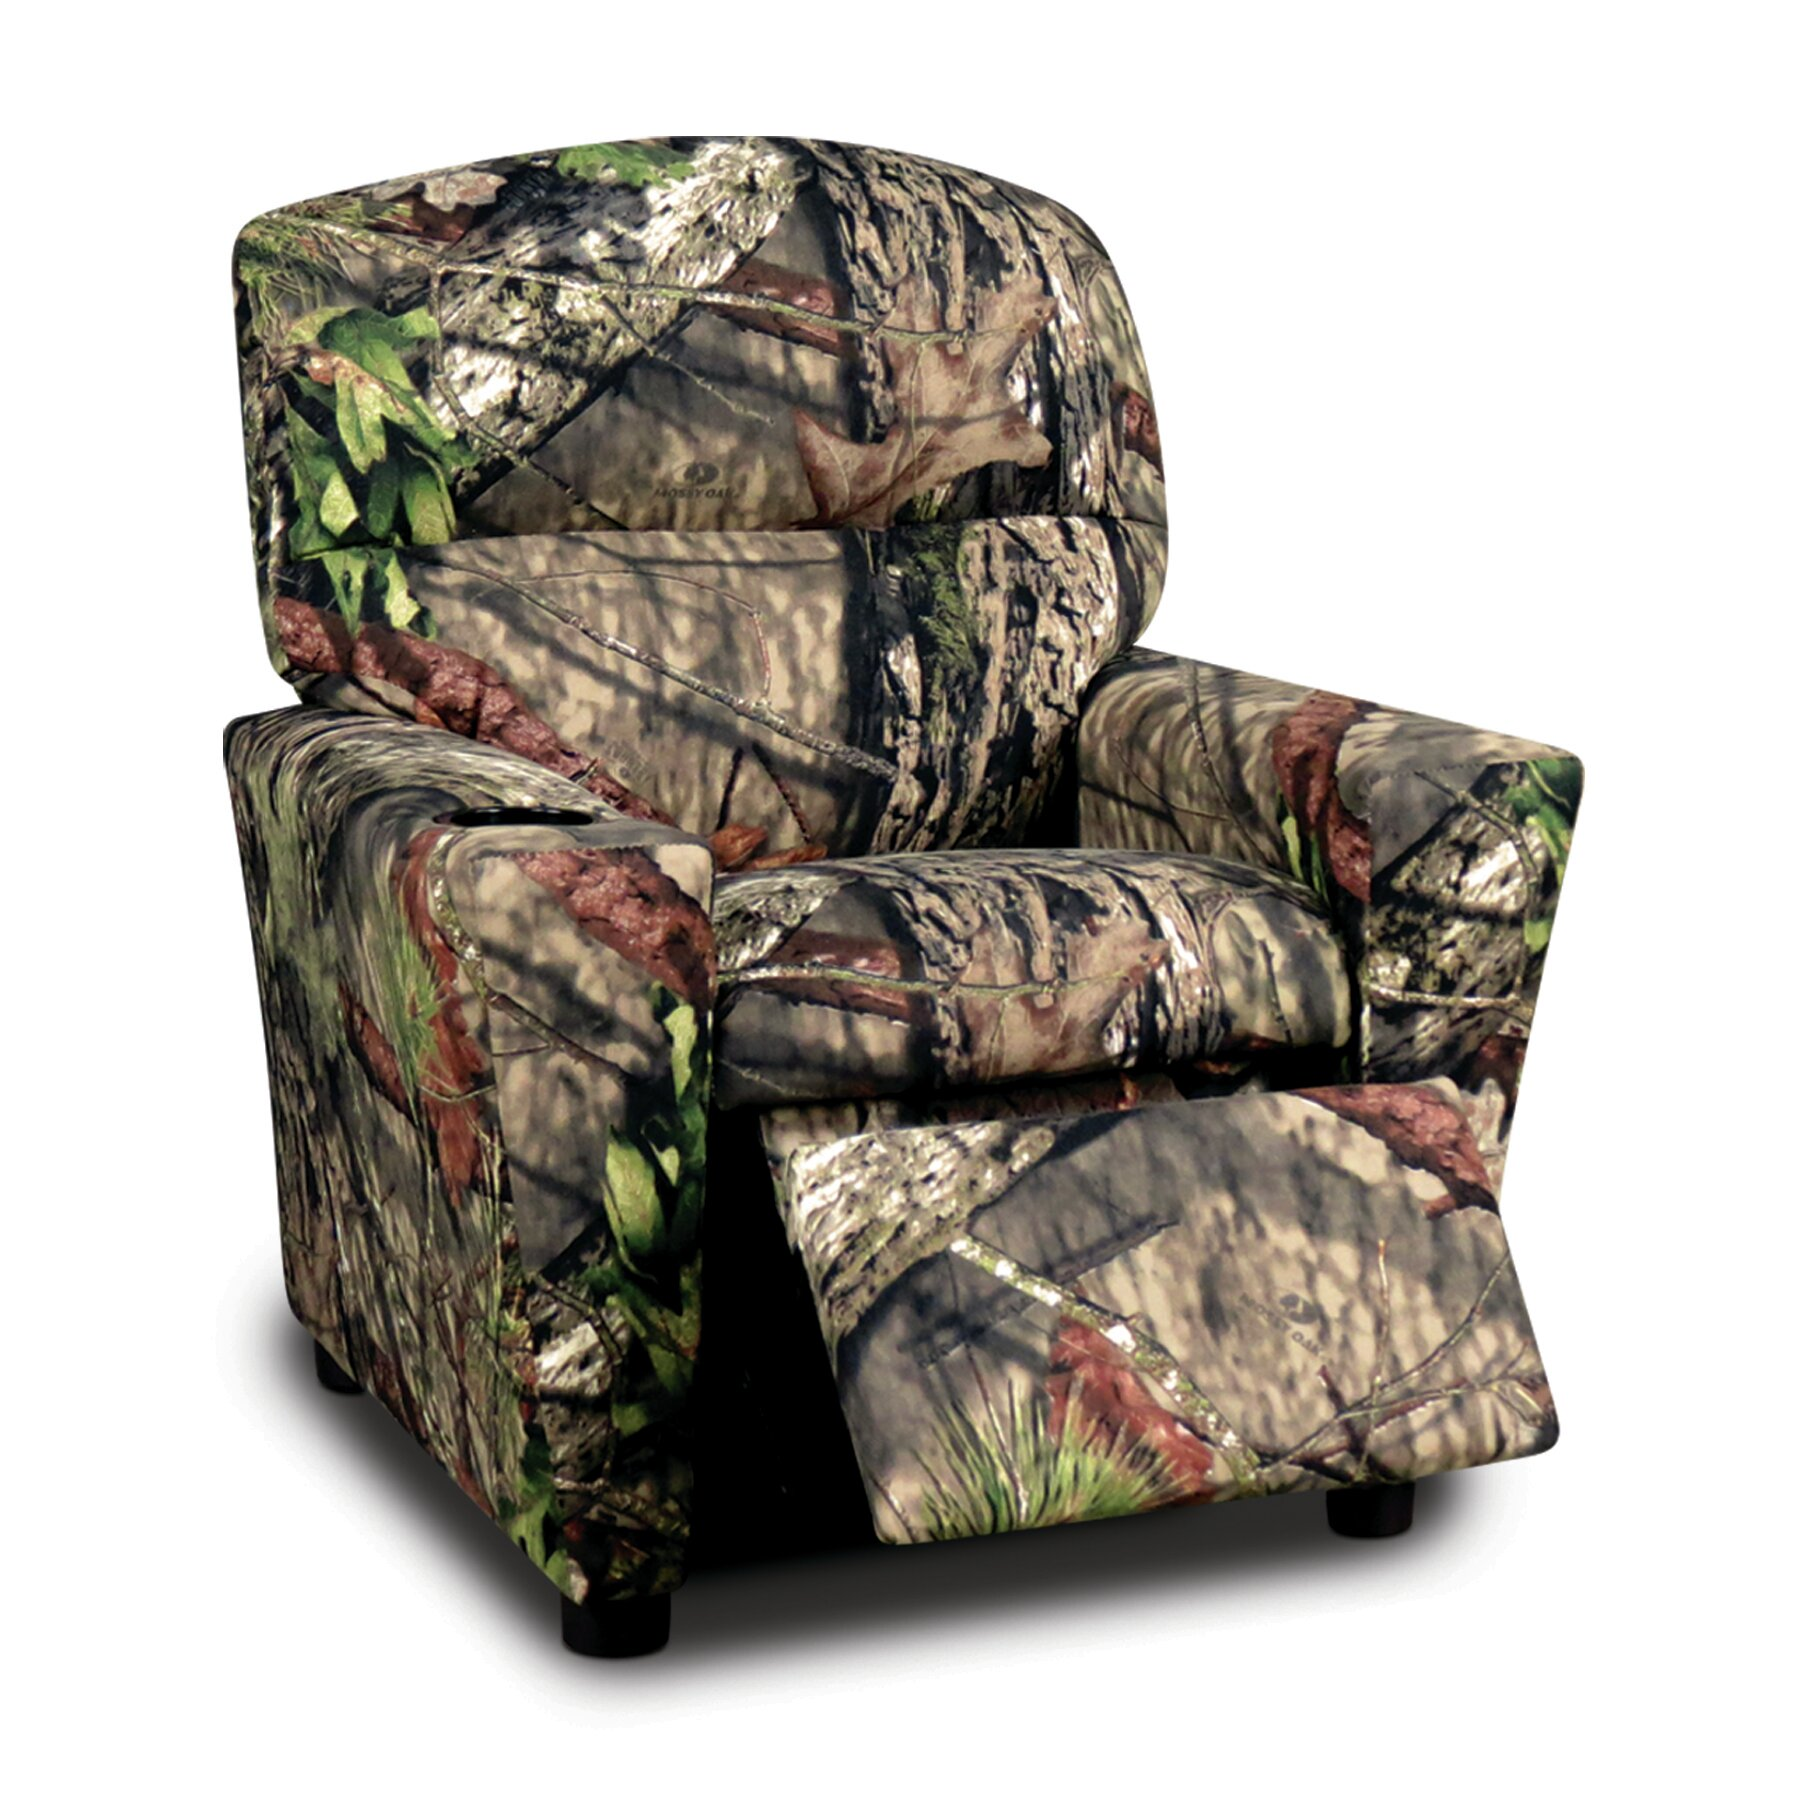 Mossy Oak Kids Cotton Recliner With Cup Holder Ebay